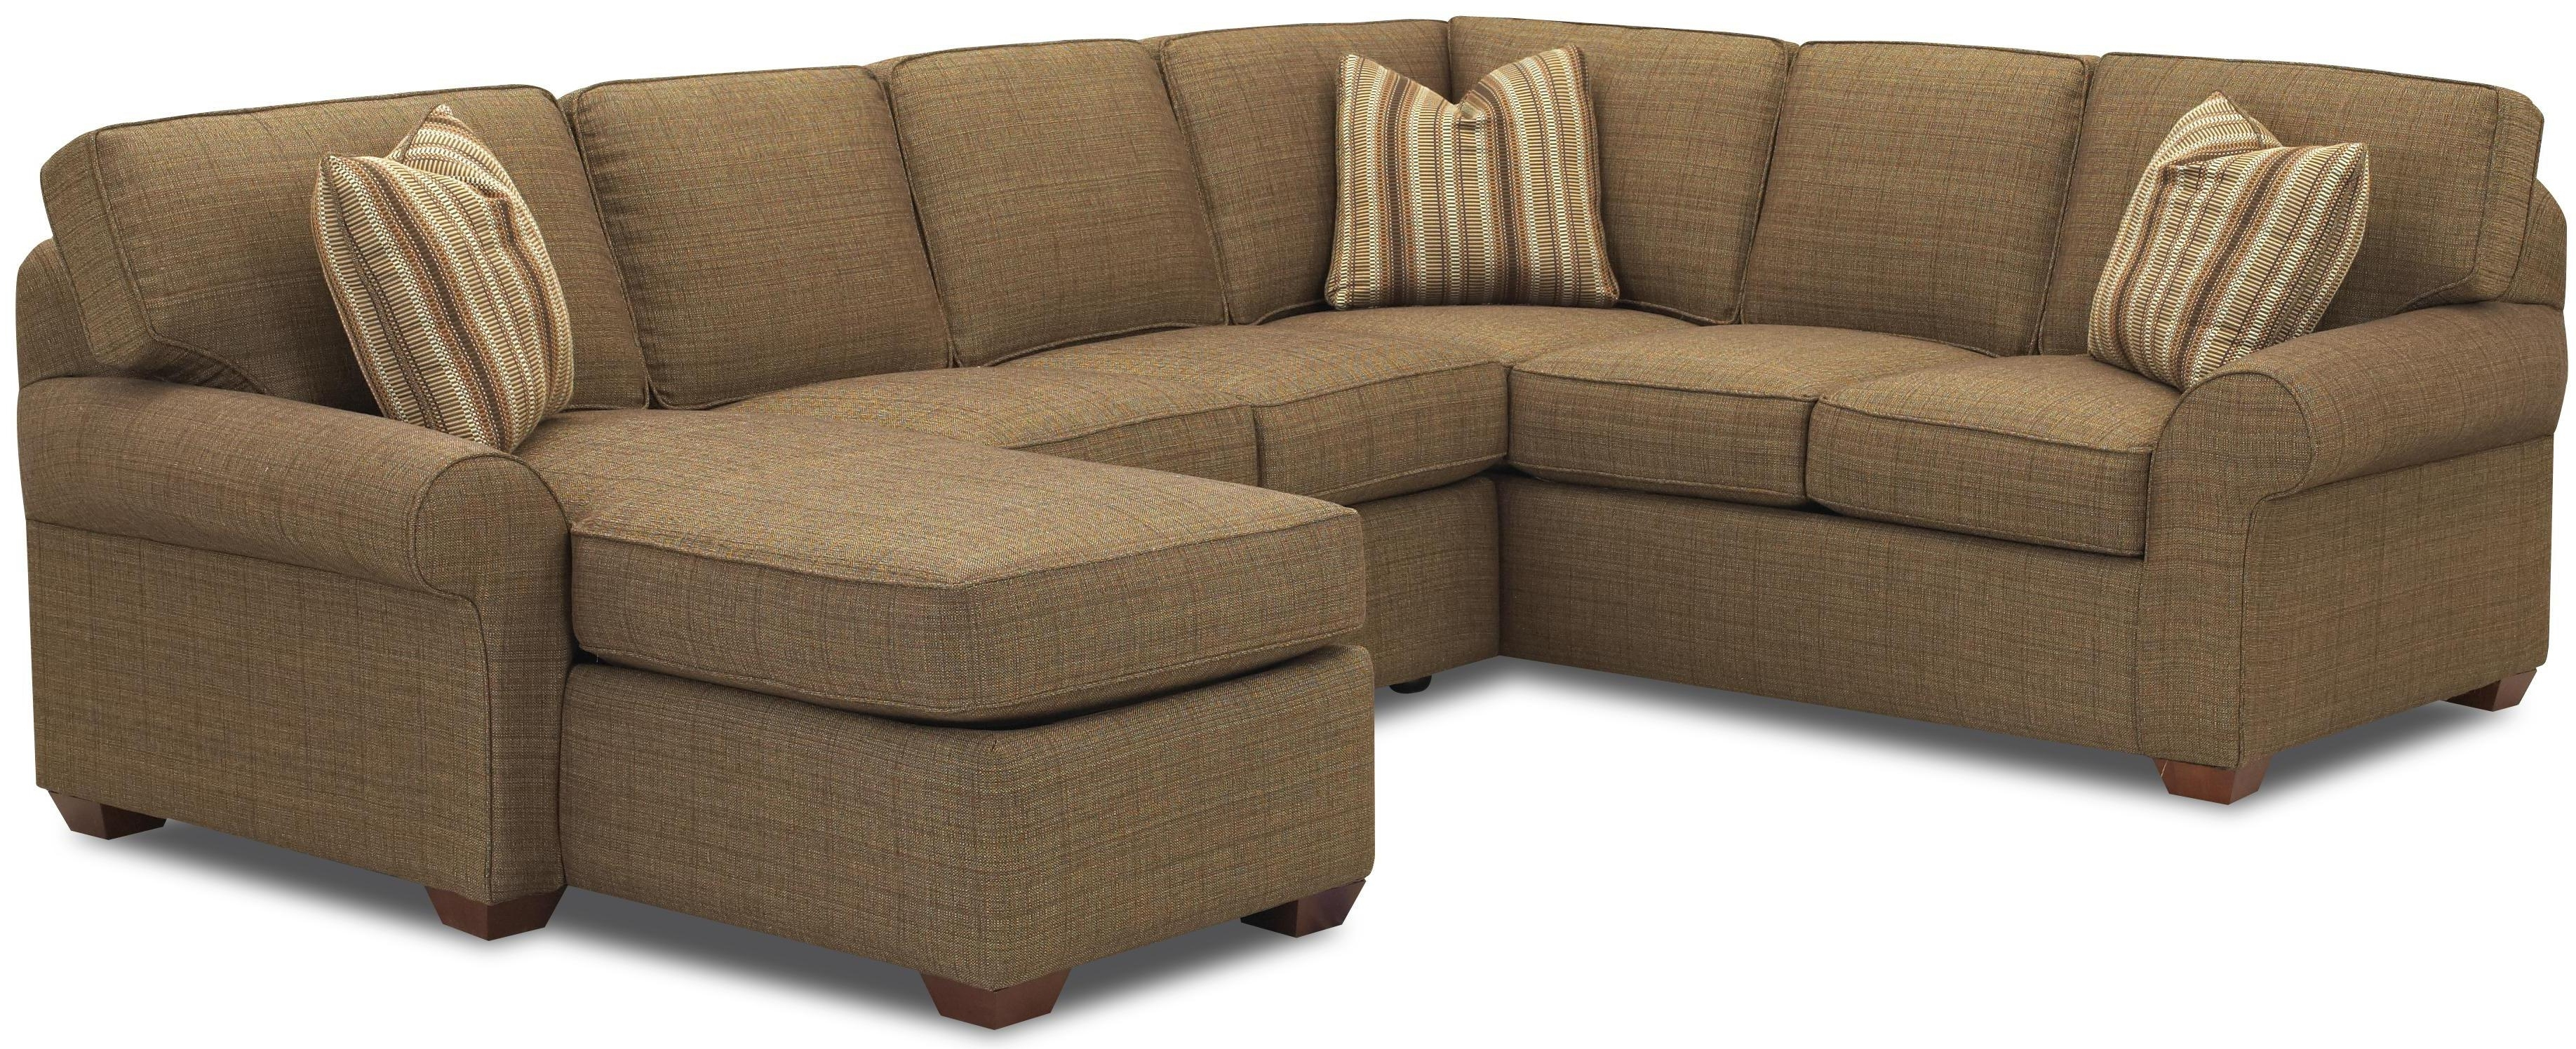 Chaise Settees Pertaining To 2017 Chaise Lounge Sofa Also Adjustable Chaise Lounge Also Luxury (View 4 of 15)